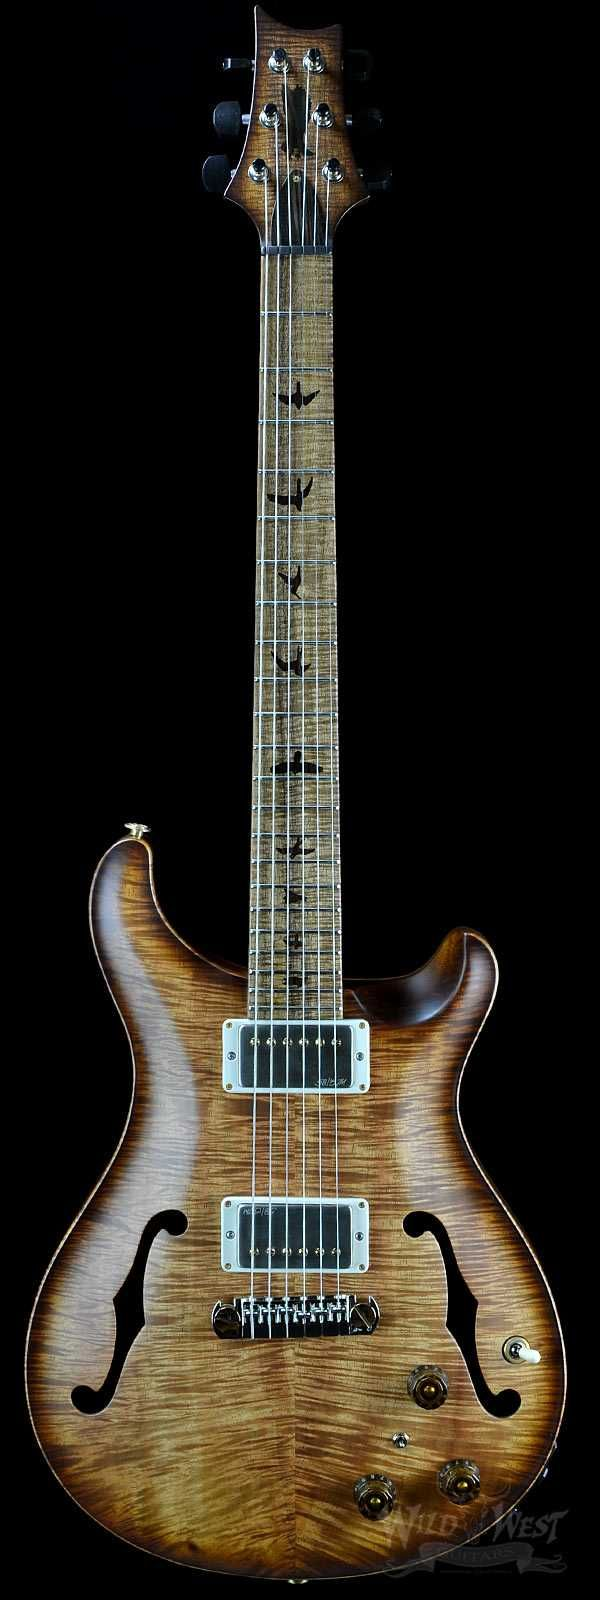 87 Best Guitars Images On Pinterest Bass Electric Free Download Iceman Guitar Wiring Diagram Prs Paul Reed Smith Hollowbody Ii Private Stock 5674 Natural Satin Koa Smoked Burst